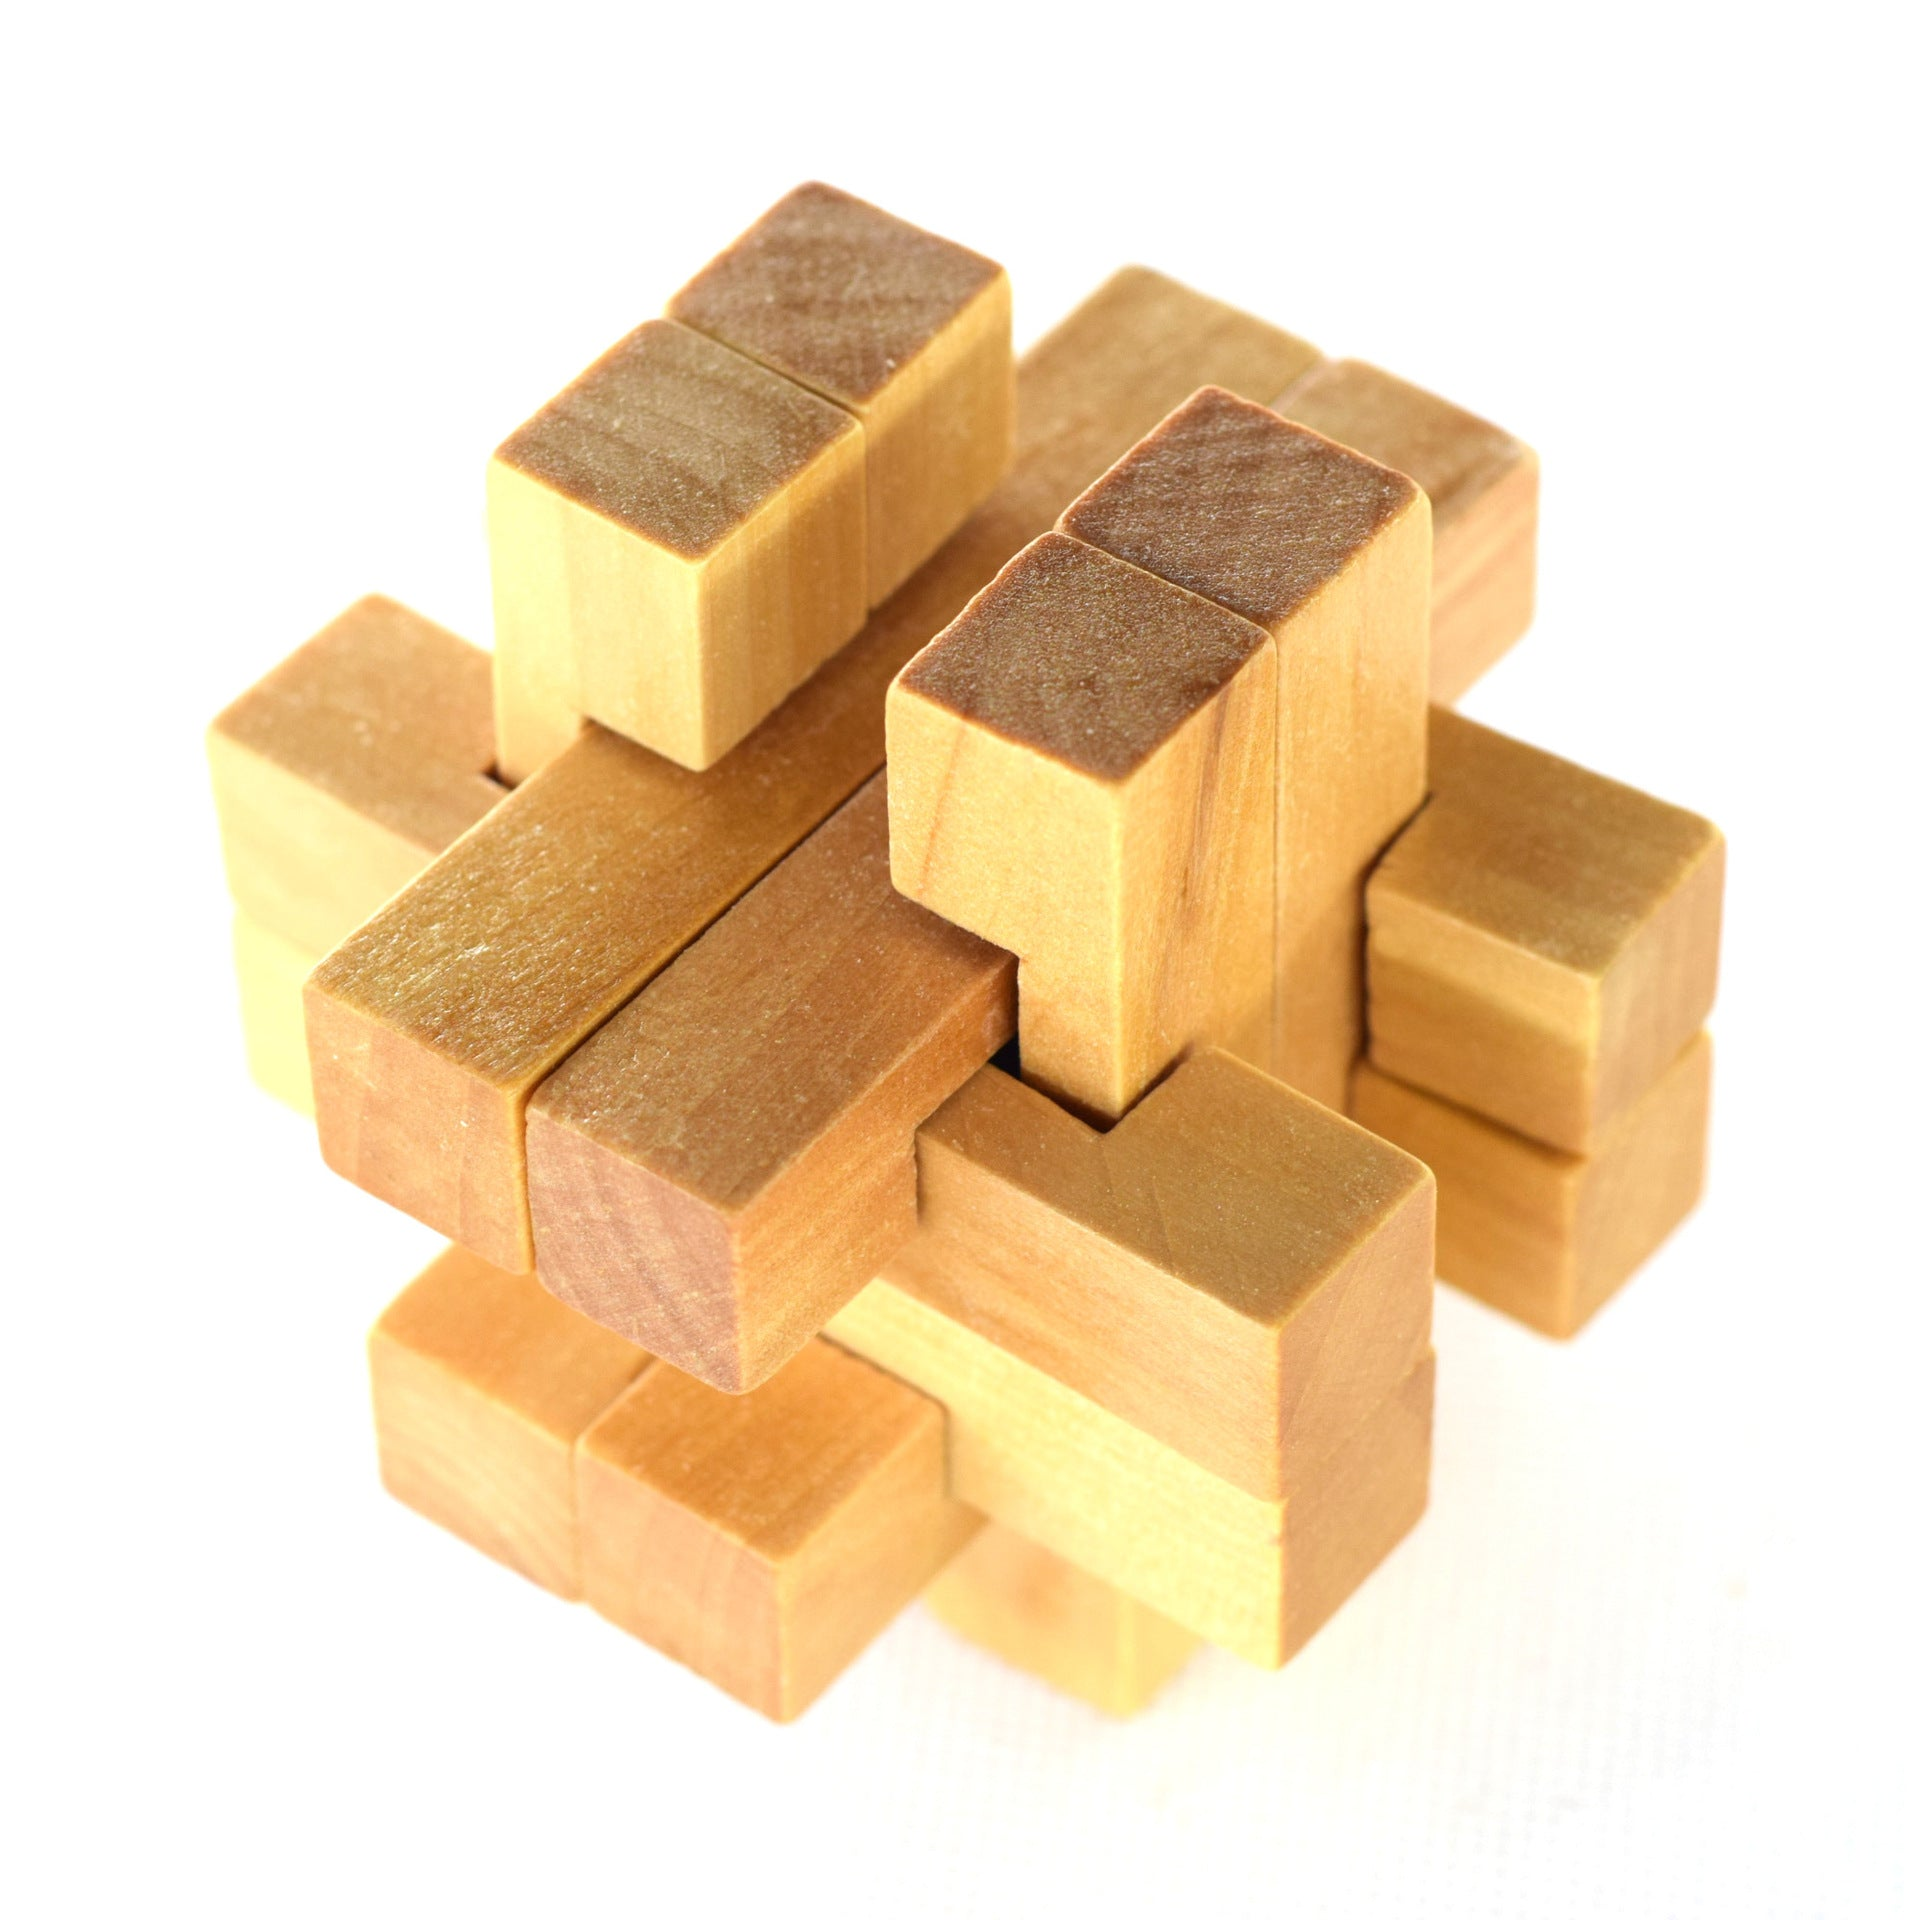 Wooden Puzzle CubeTaking the Ball Out Educational Toy Kong Ming Luban Lock for Adult Children Kids Puzzles Brain Training Toy